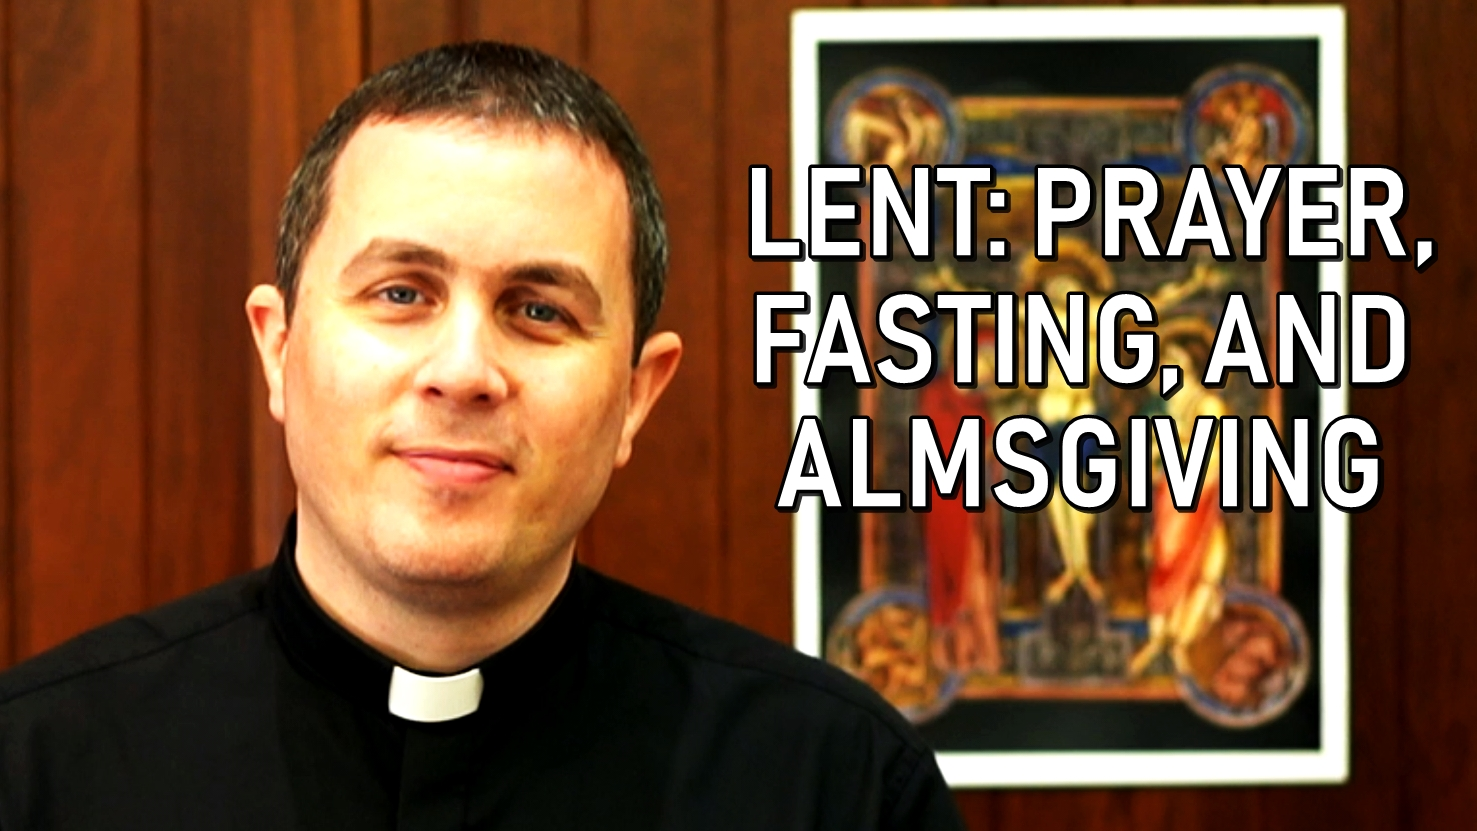 Lent-Prayer-Fasting-Almsgiving-Thumbnail